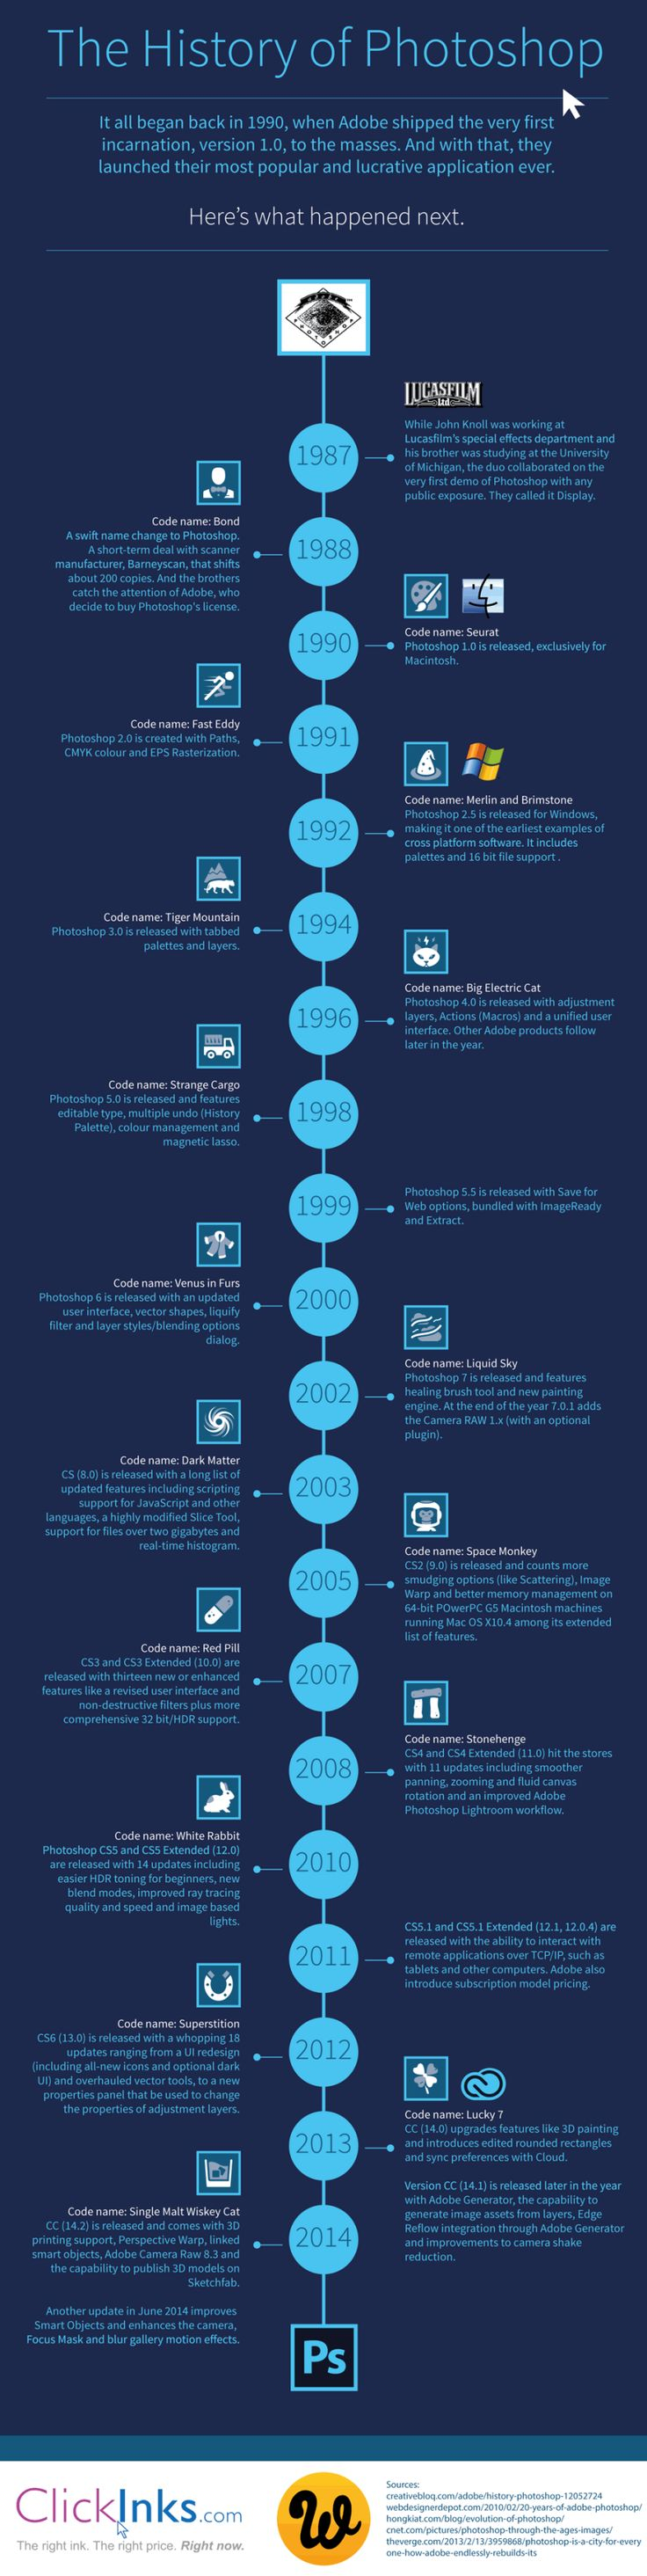 The history of Photoshop #infografia #infographic #software